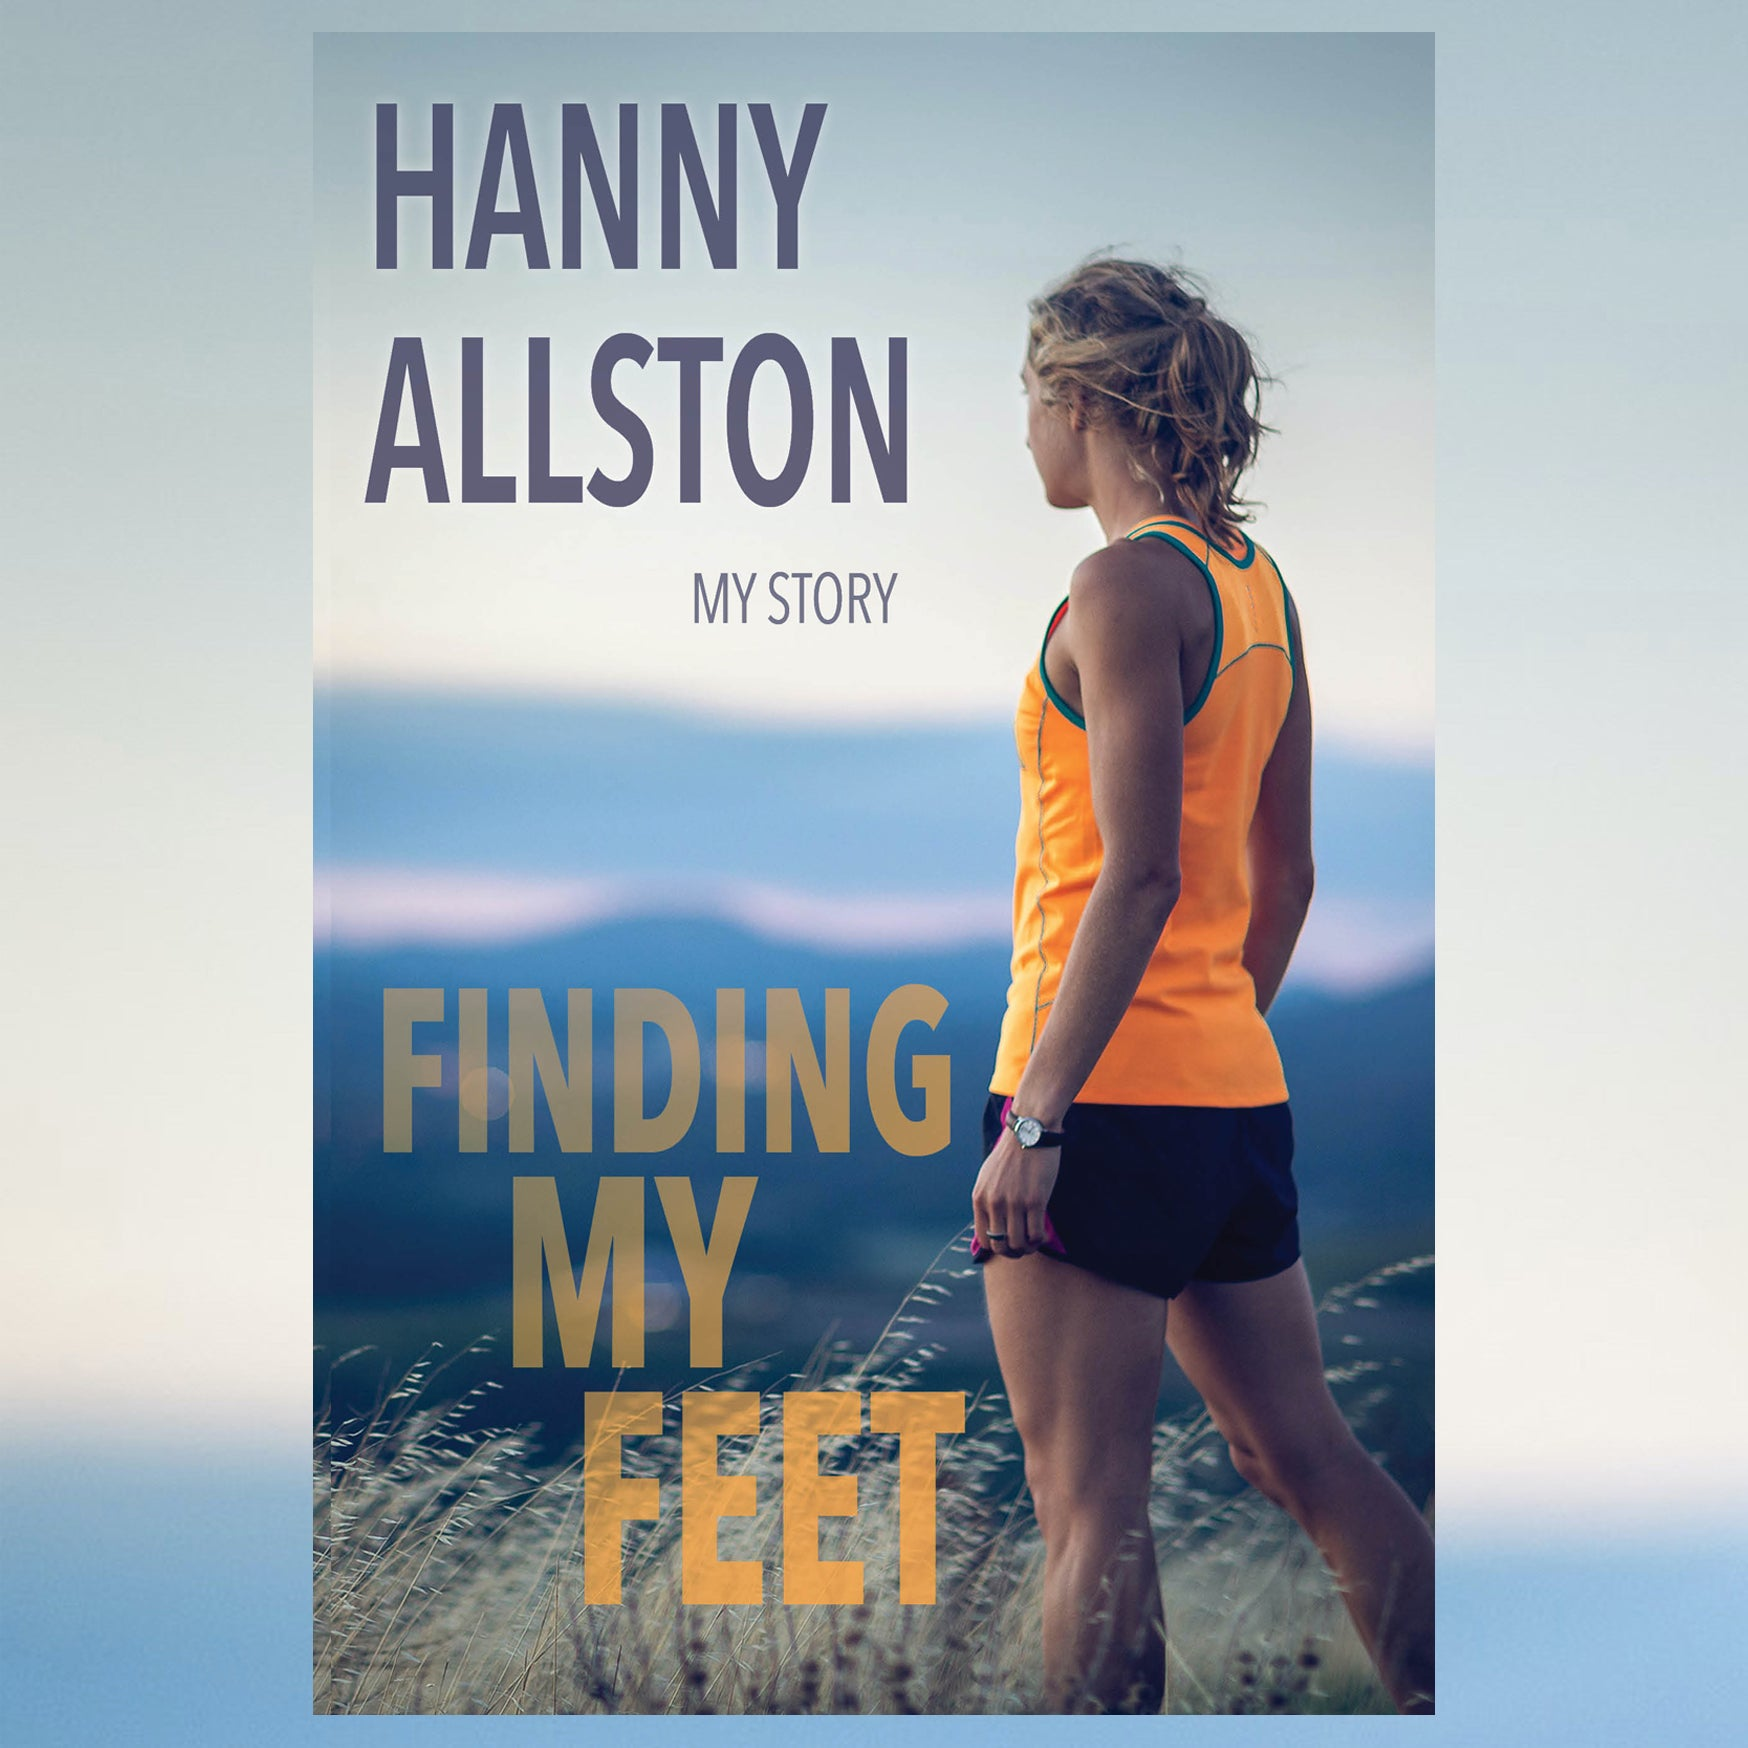 Hanny Allston Finding My Feet Book Memoir Australia Tasmania Hobart Launceston My Story